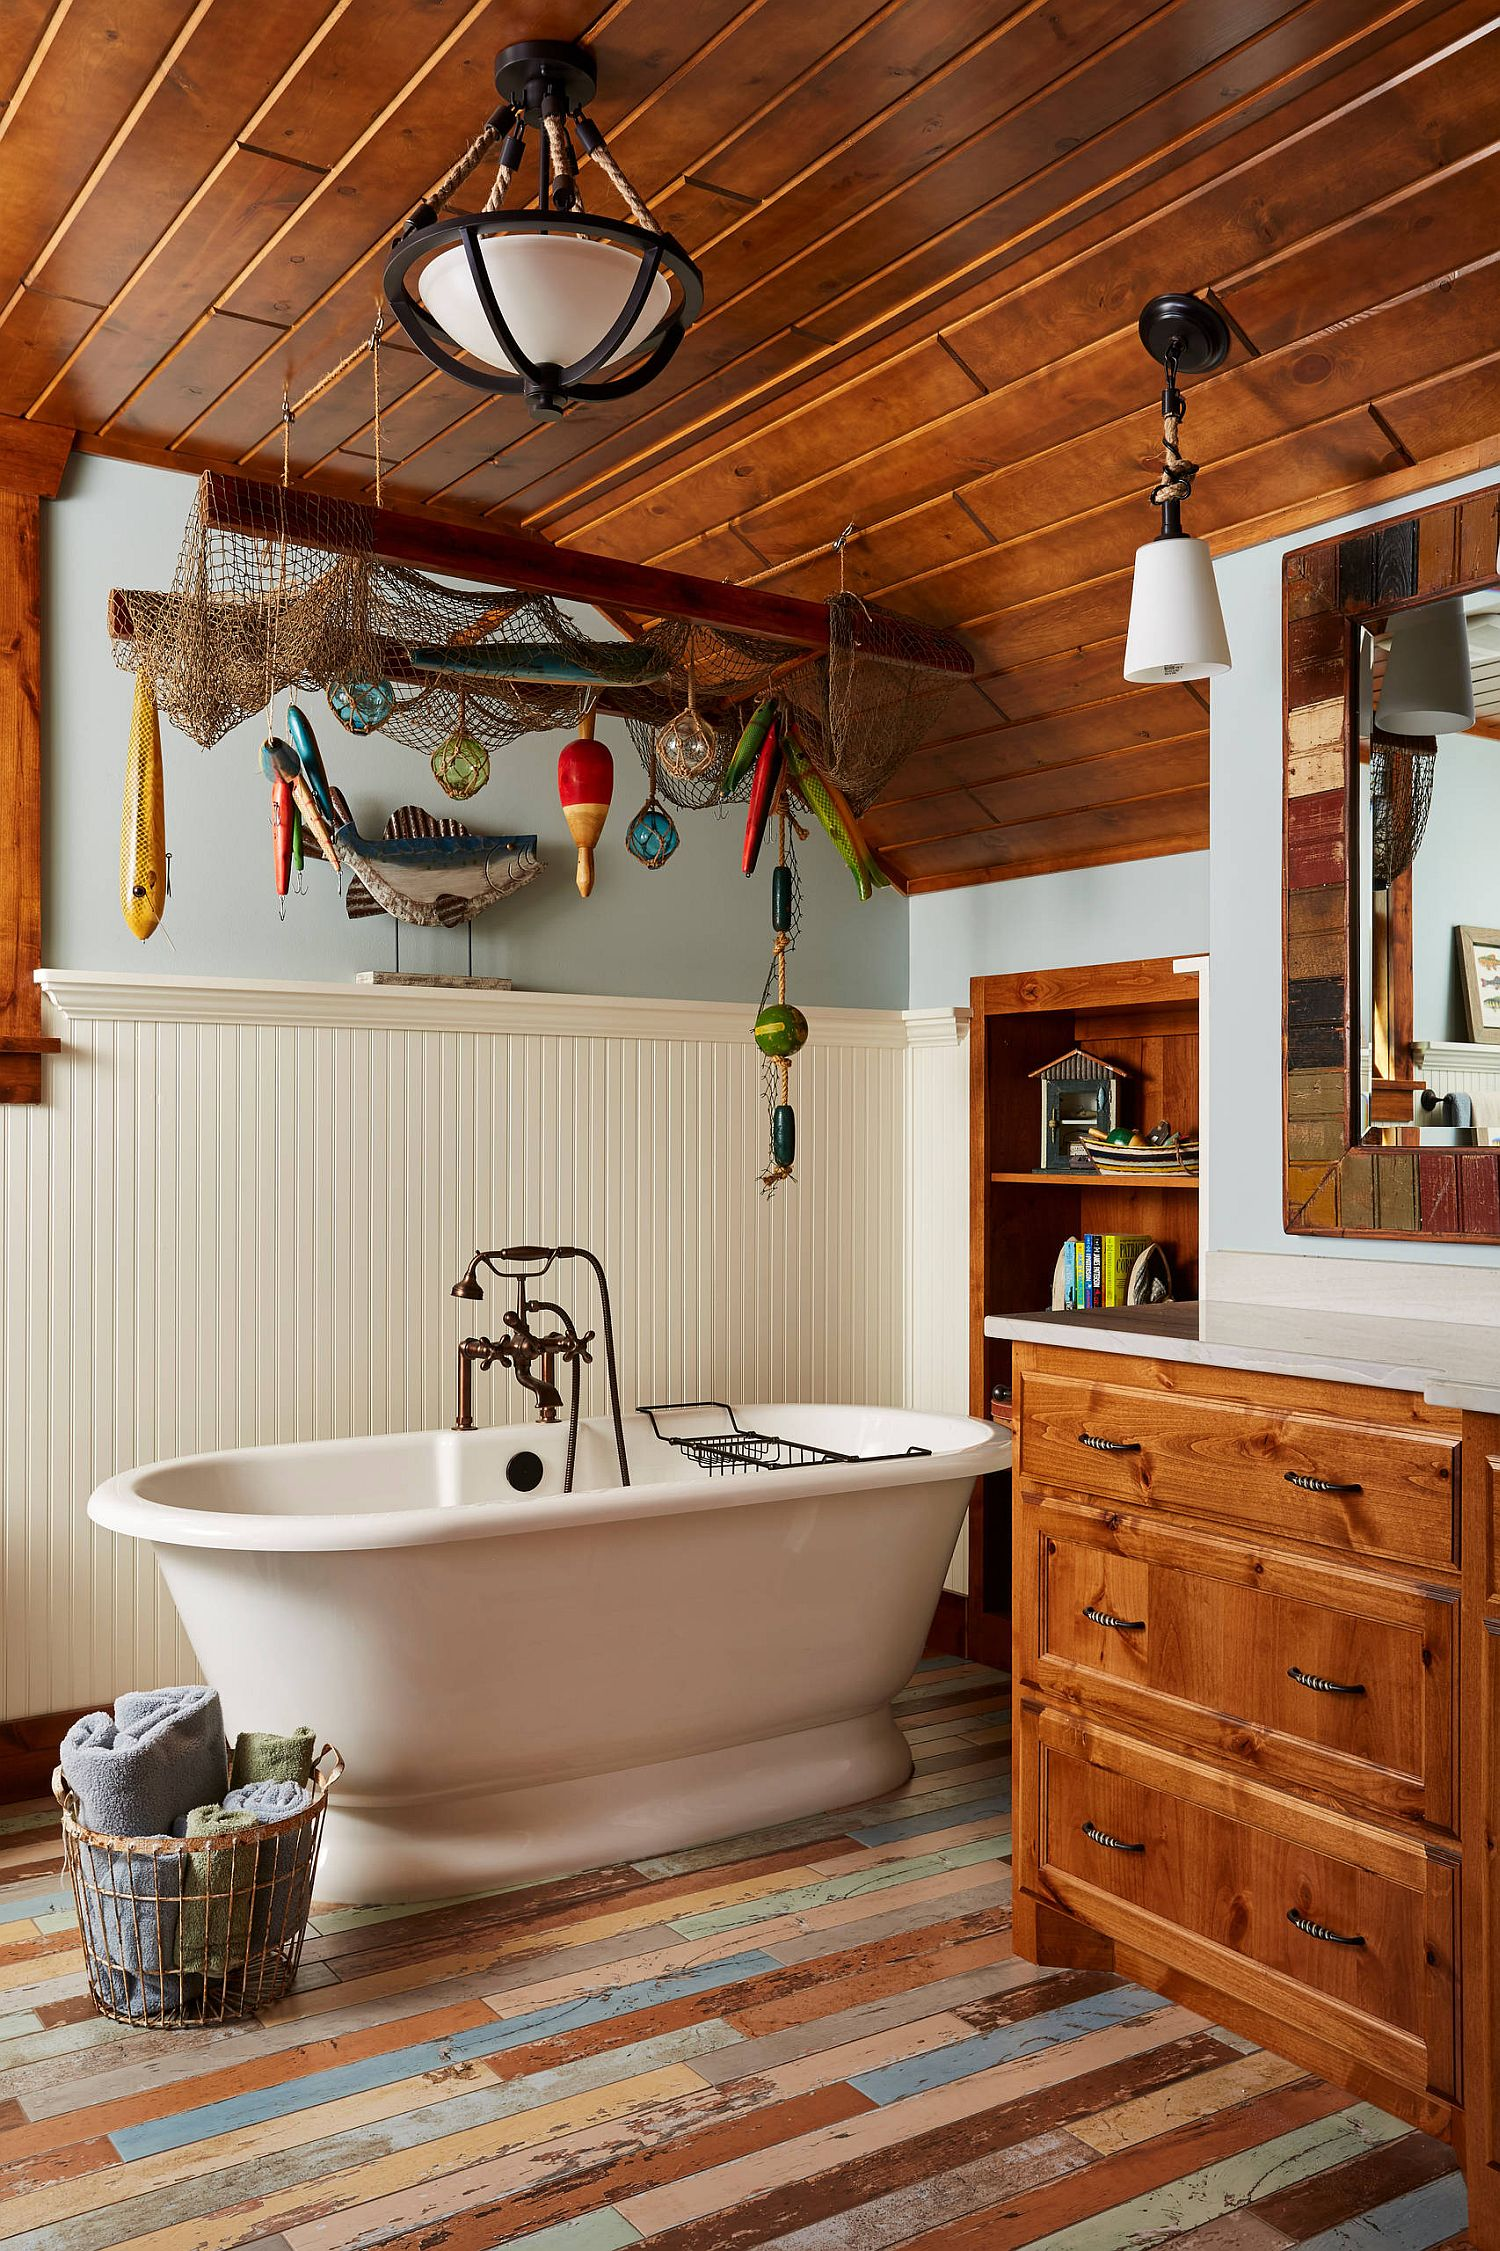 Wood-brings-wramth-to-even-the-bathroom-in-white-with-rustic-charm